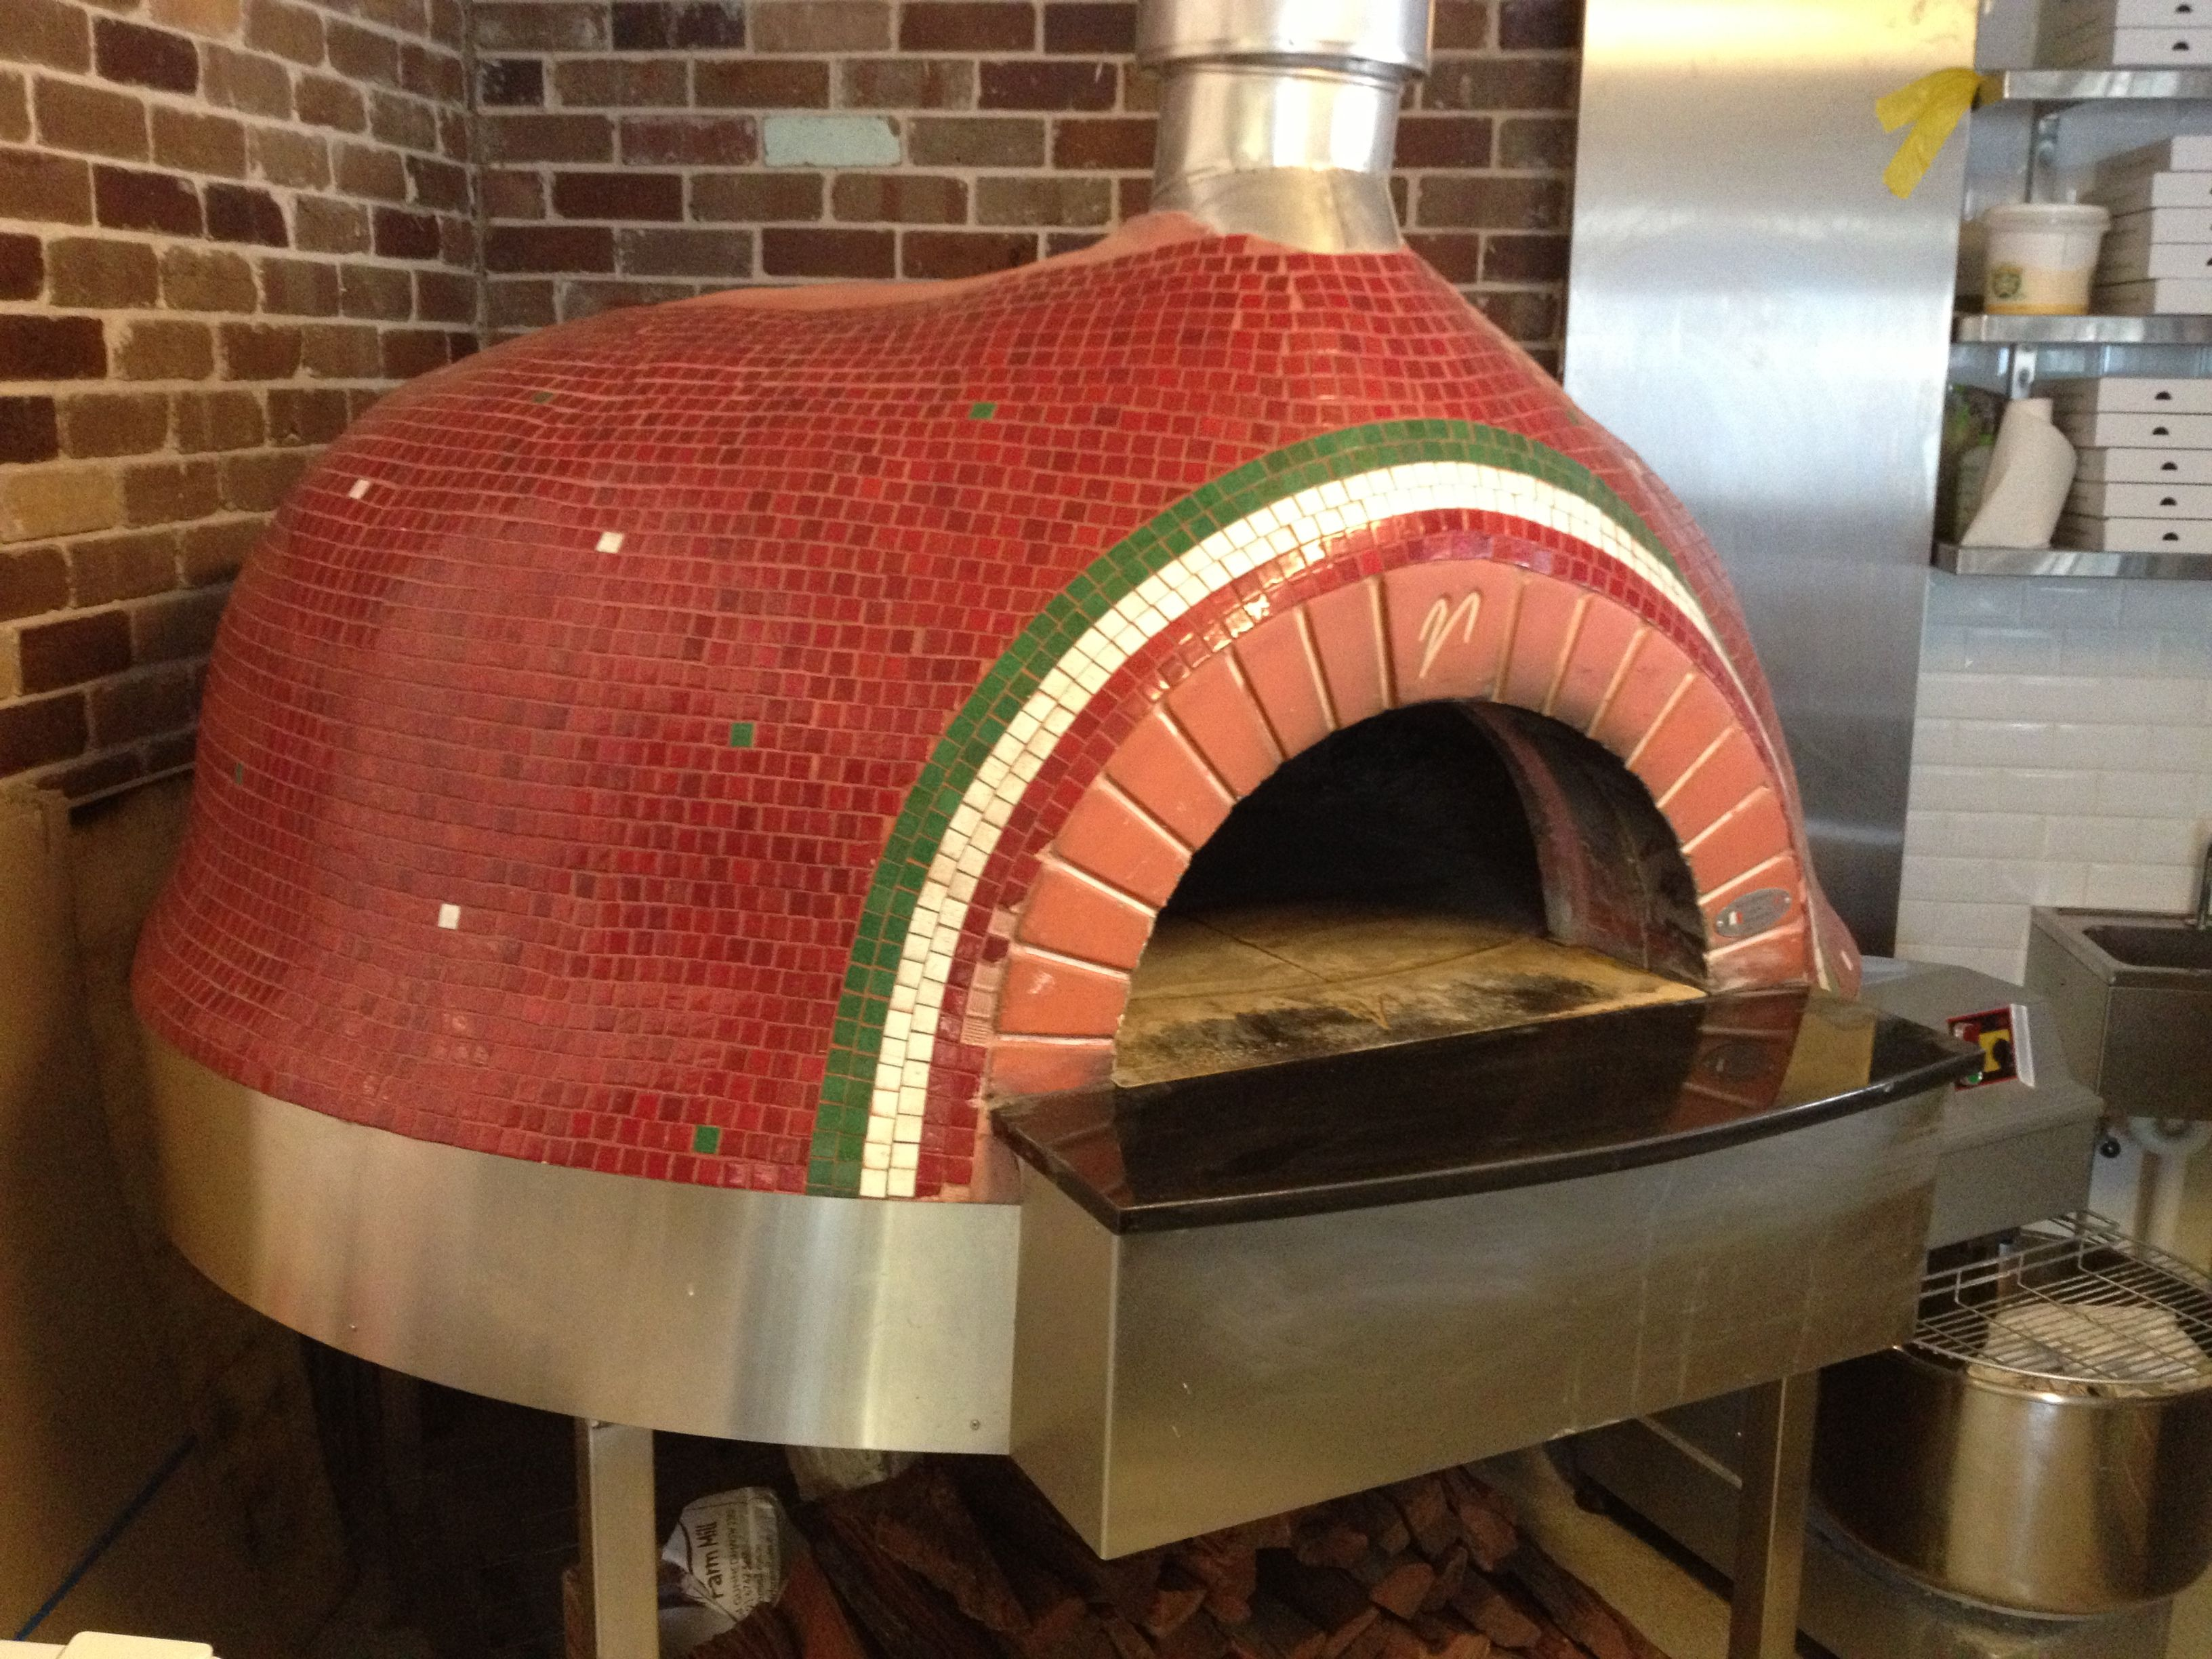 pizza barbone restaurant & catering, authentic wood fired pizza in